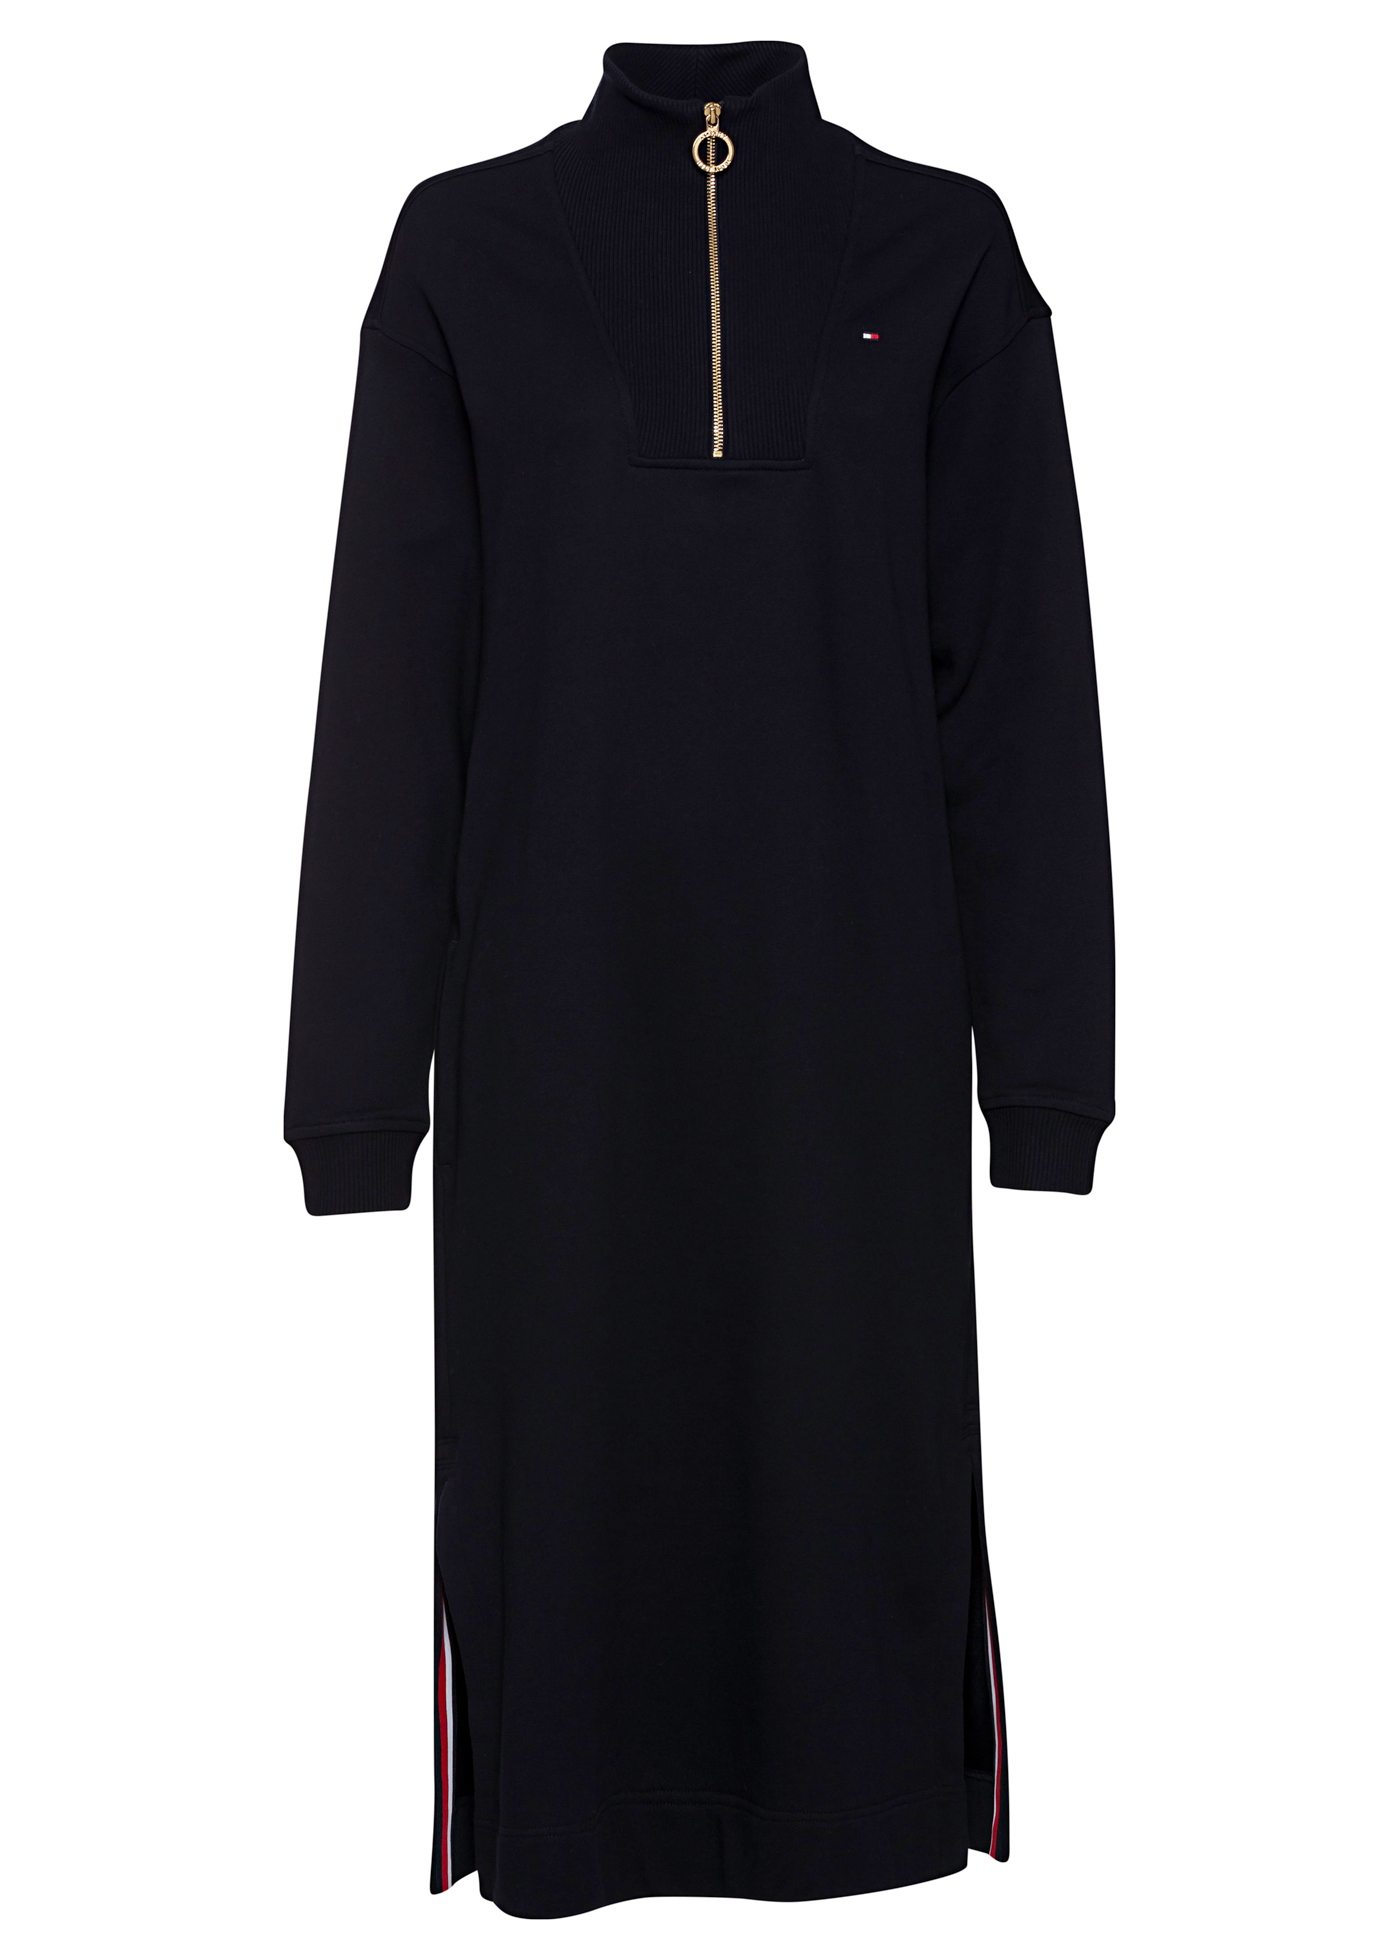 RELAXED HALF-ZIP MIDI DRESS LS image number 0